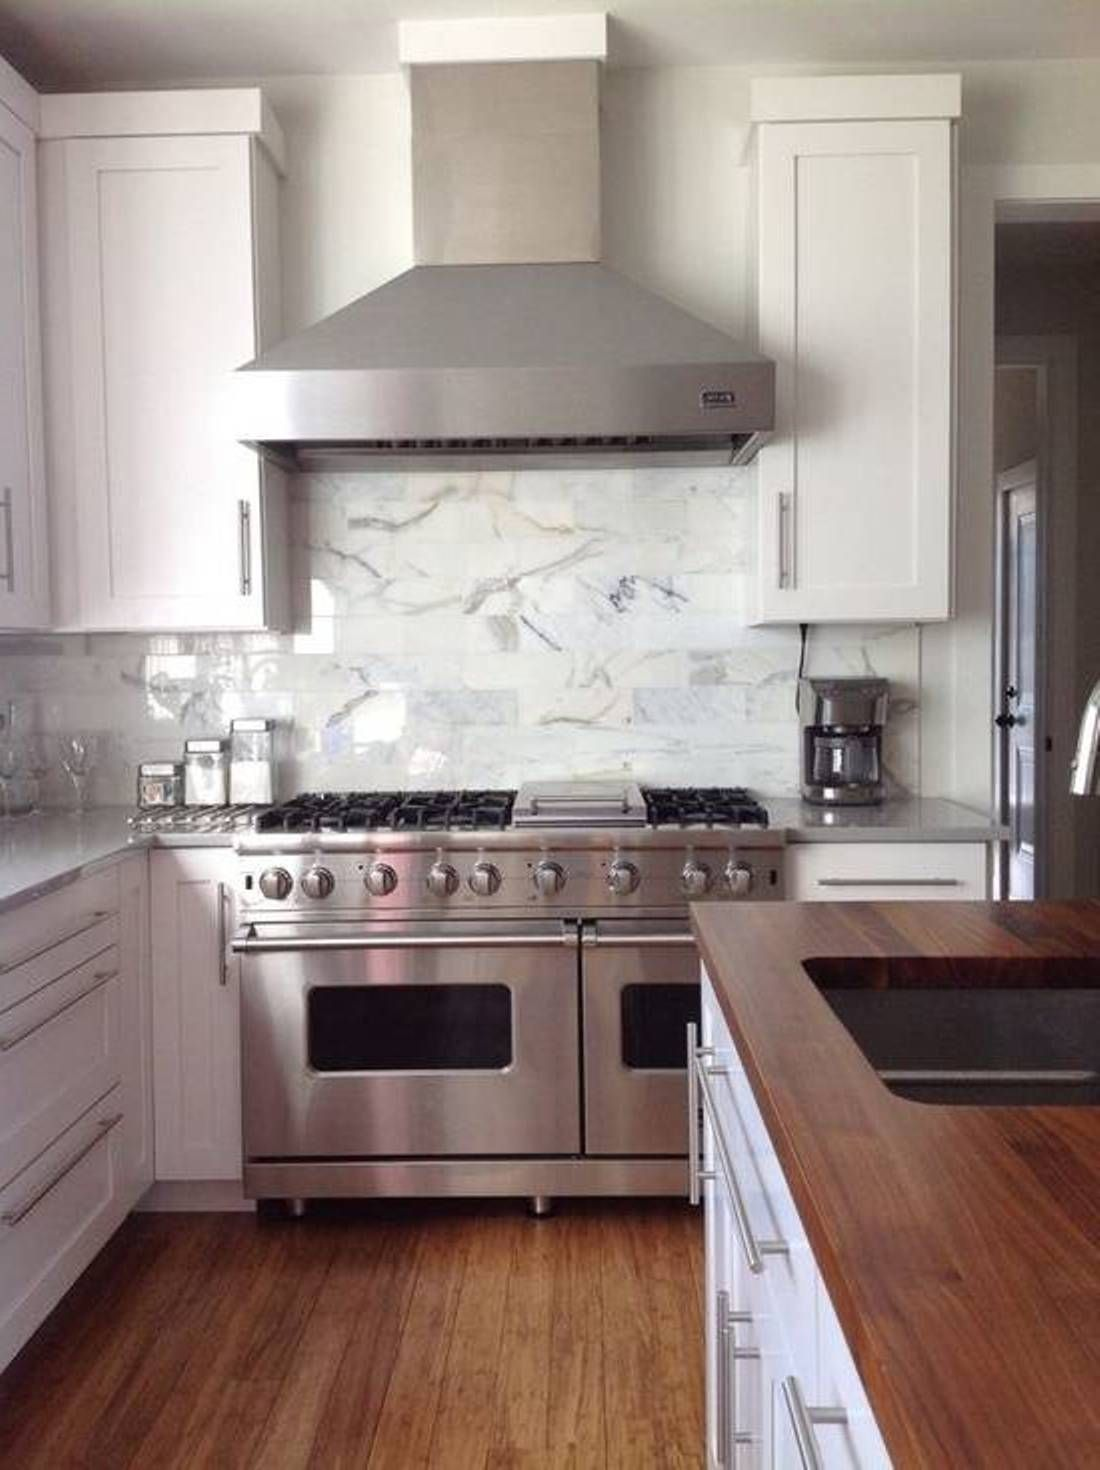 Unique Darkslategray Stainless Steel Stove Backsplash Pretty Range Hood  Hardwood Floor Feat Immaculate White Kitchen Cabinet